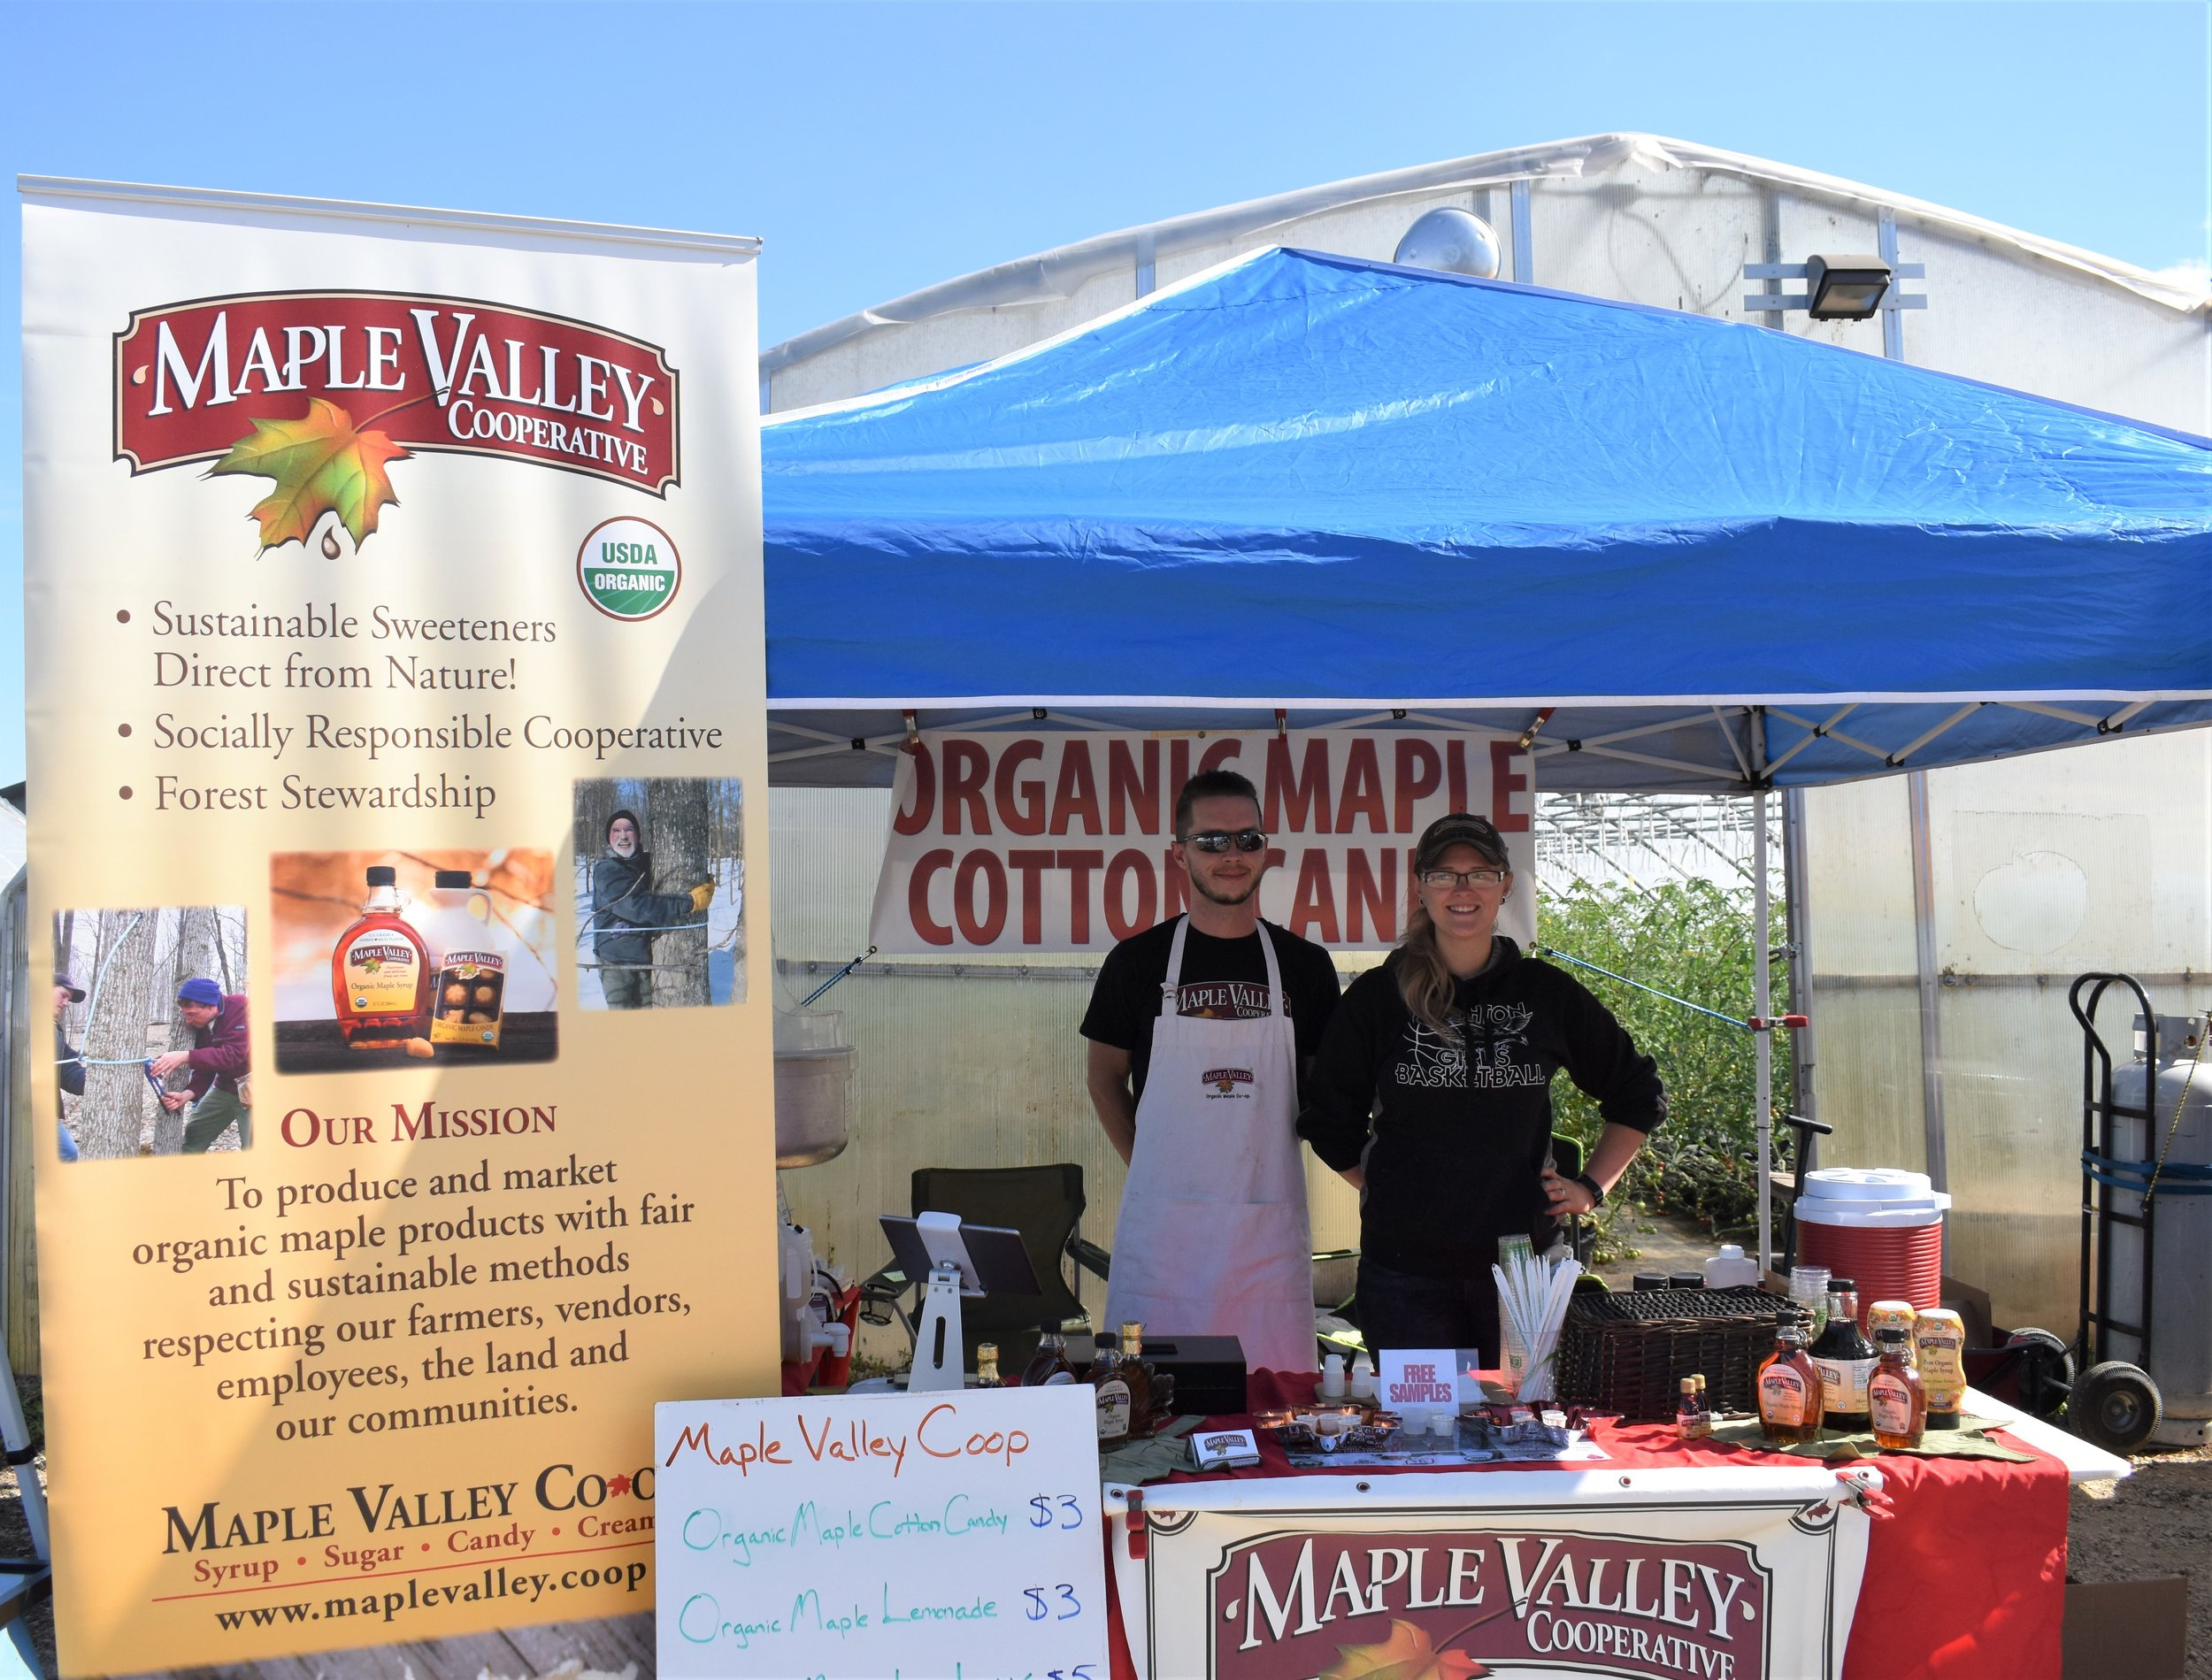 Justin and Lori Cain of Maple Valley Cooperative